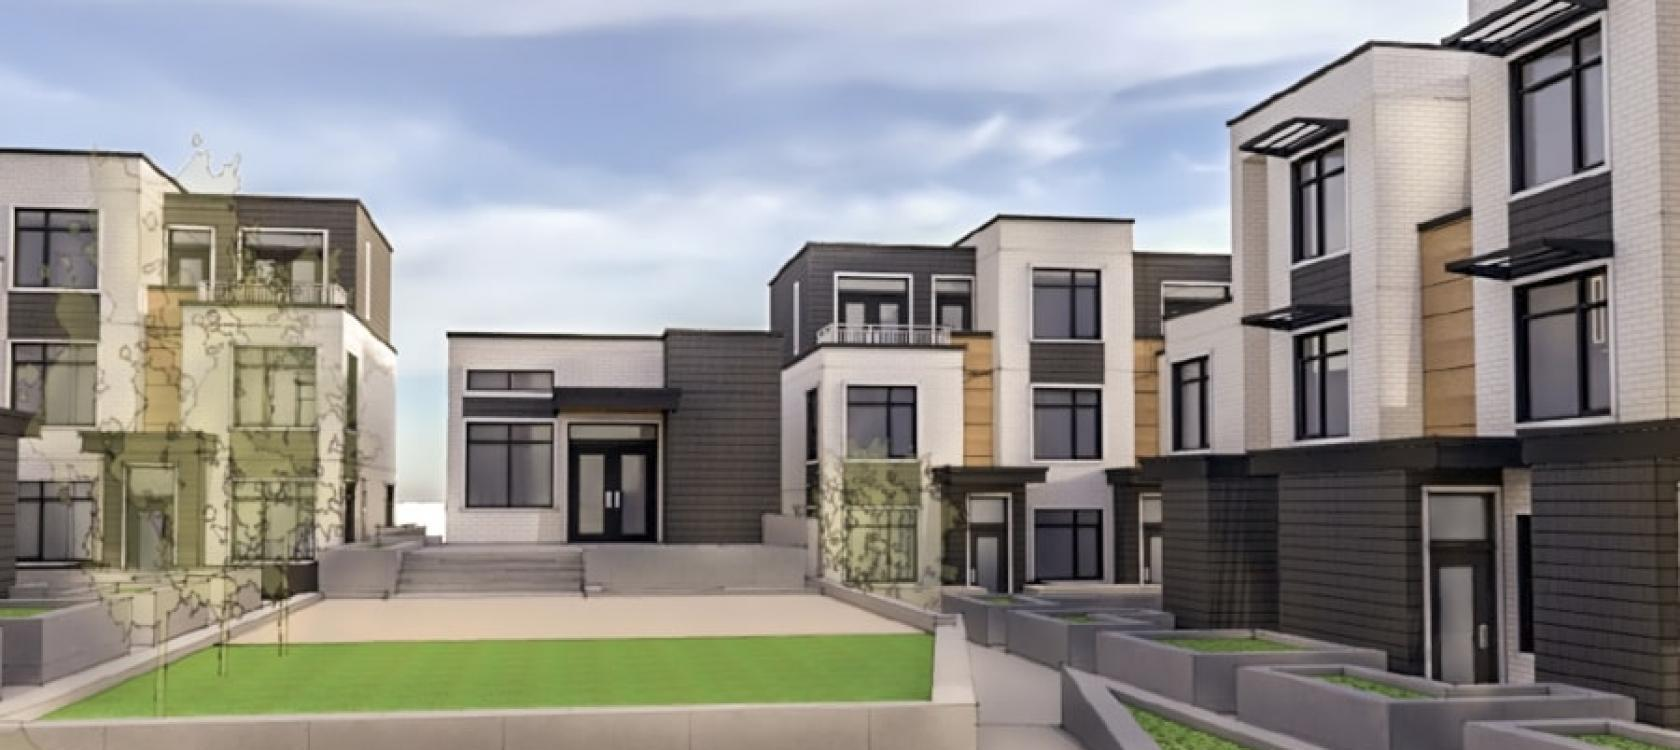 Skagen Townhomes West Coquitlam Tonwhome development for sale 2019